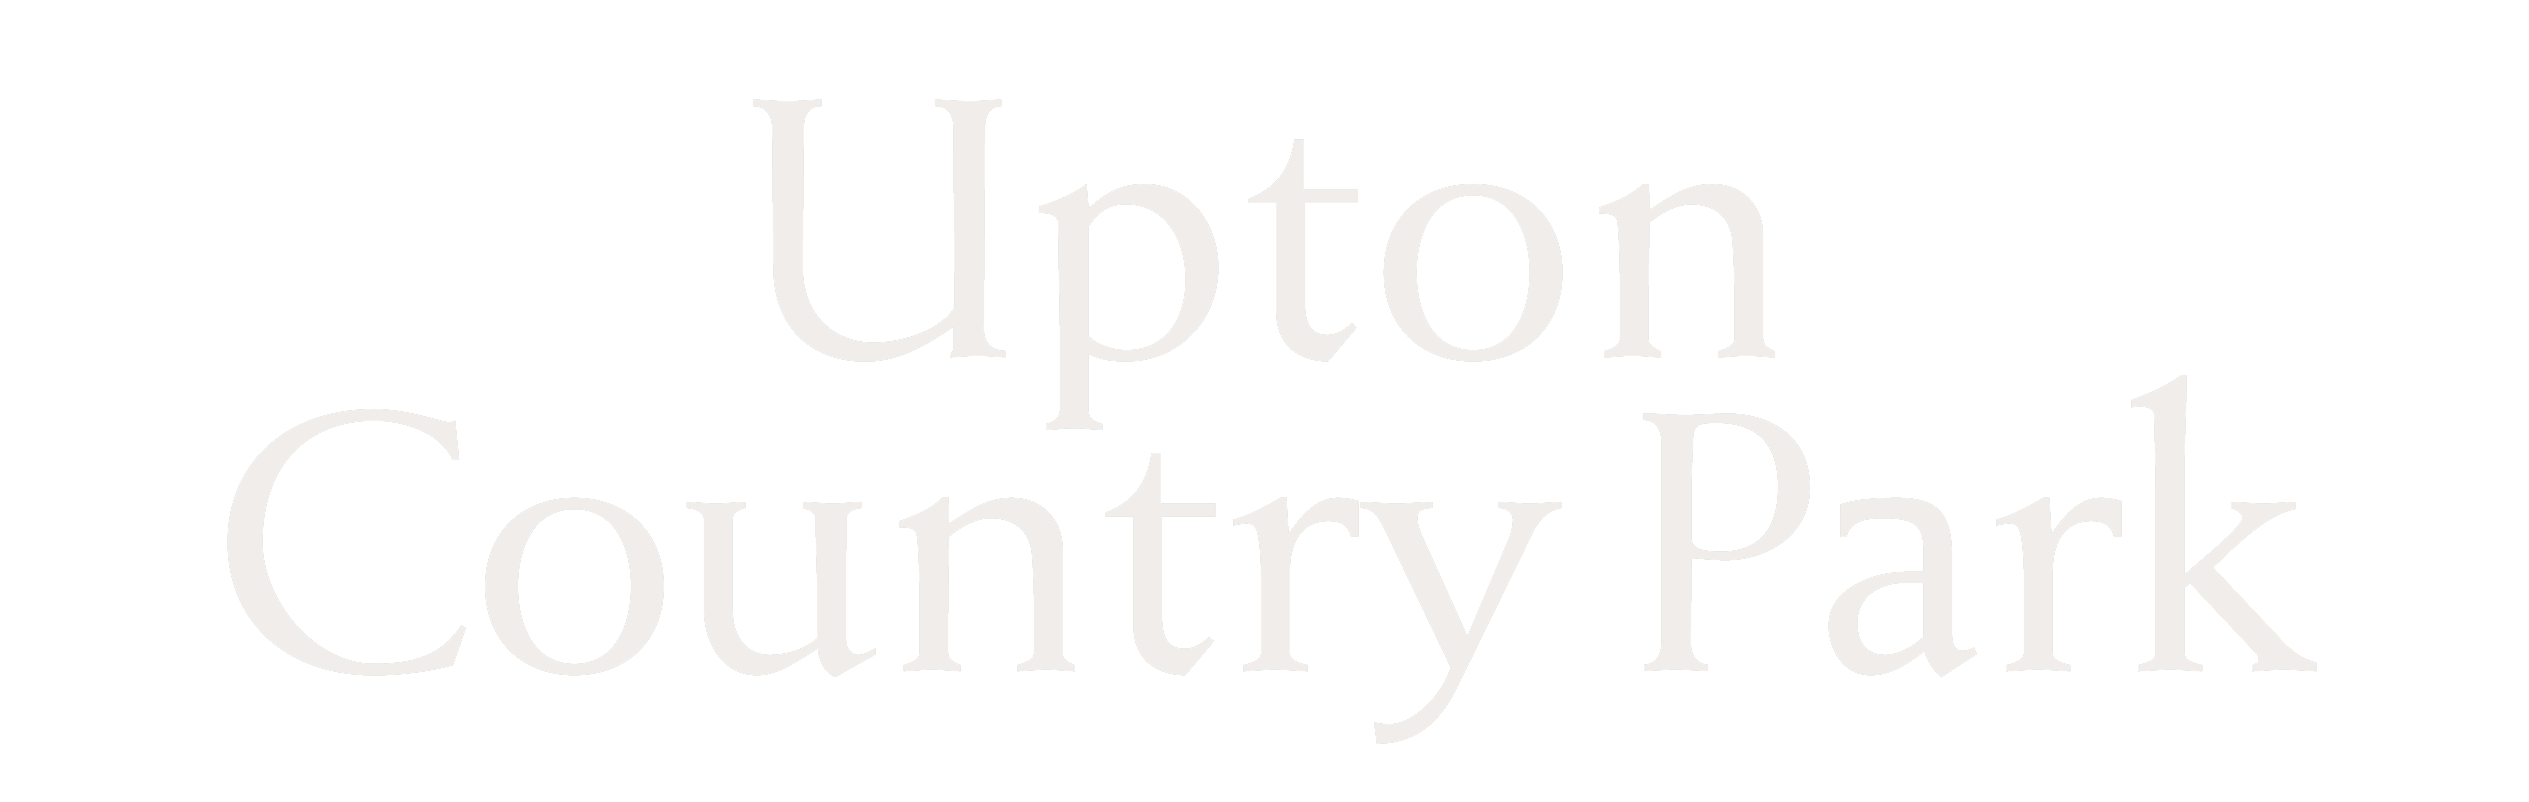 Christmas at Upton Country Park!